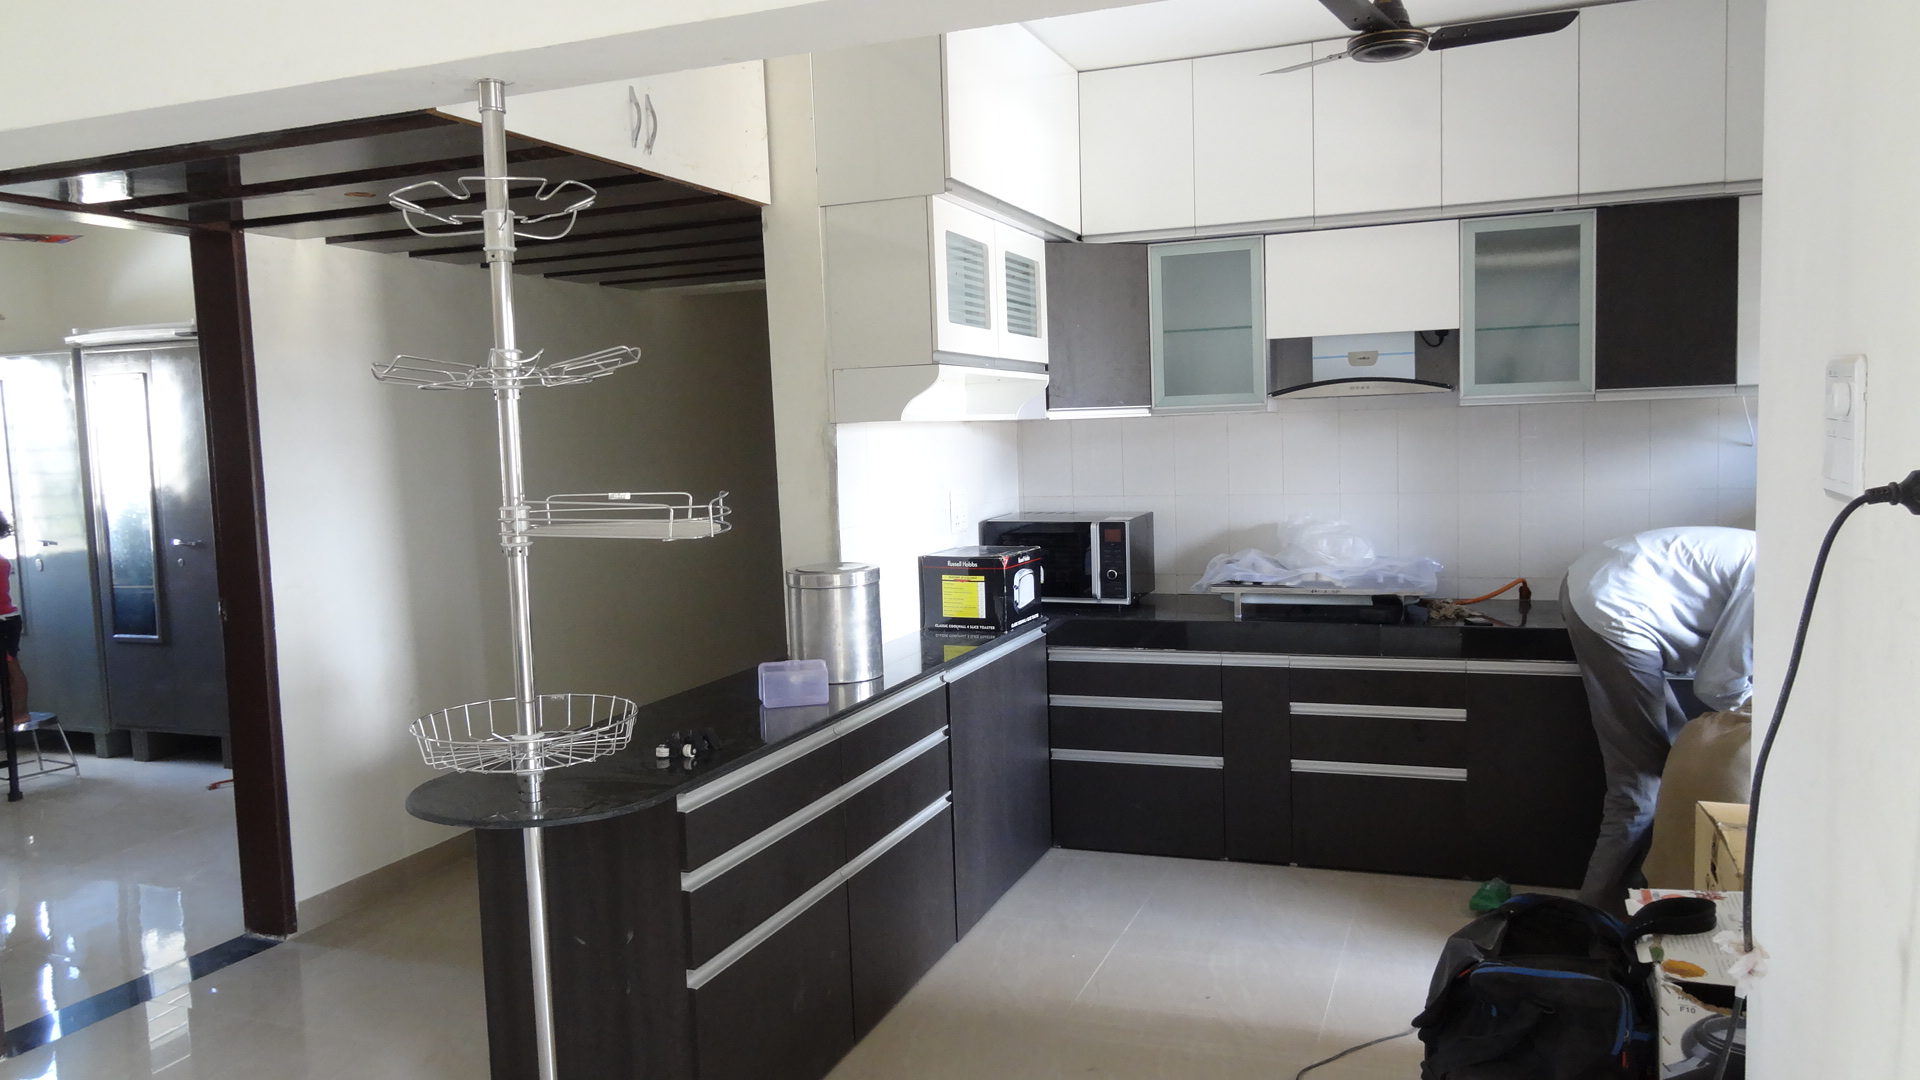 Best Modular Kitchen Maker In Pune Market   SHIRKEu0027S KITCHEN INTERIOR   PUNE  Consumer Review   MouthShut.com